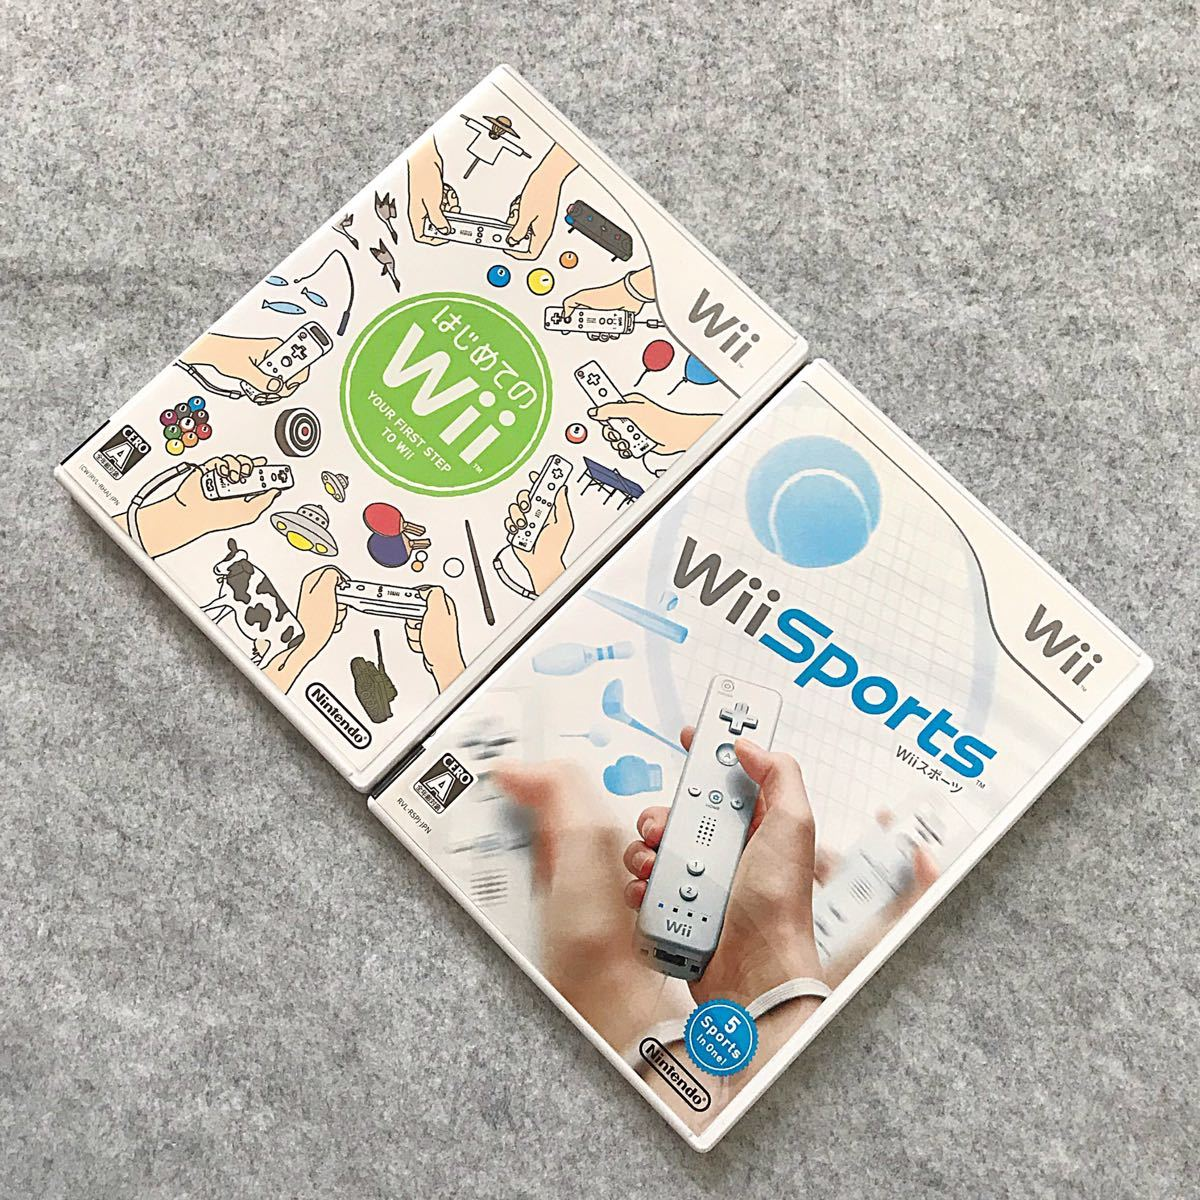 【Wiiソフト】はじめてのWii、Wii Sportsセット